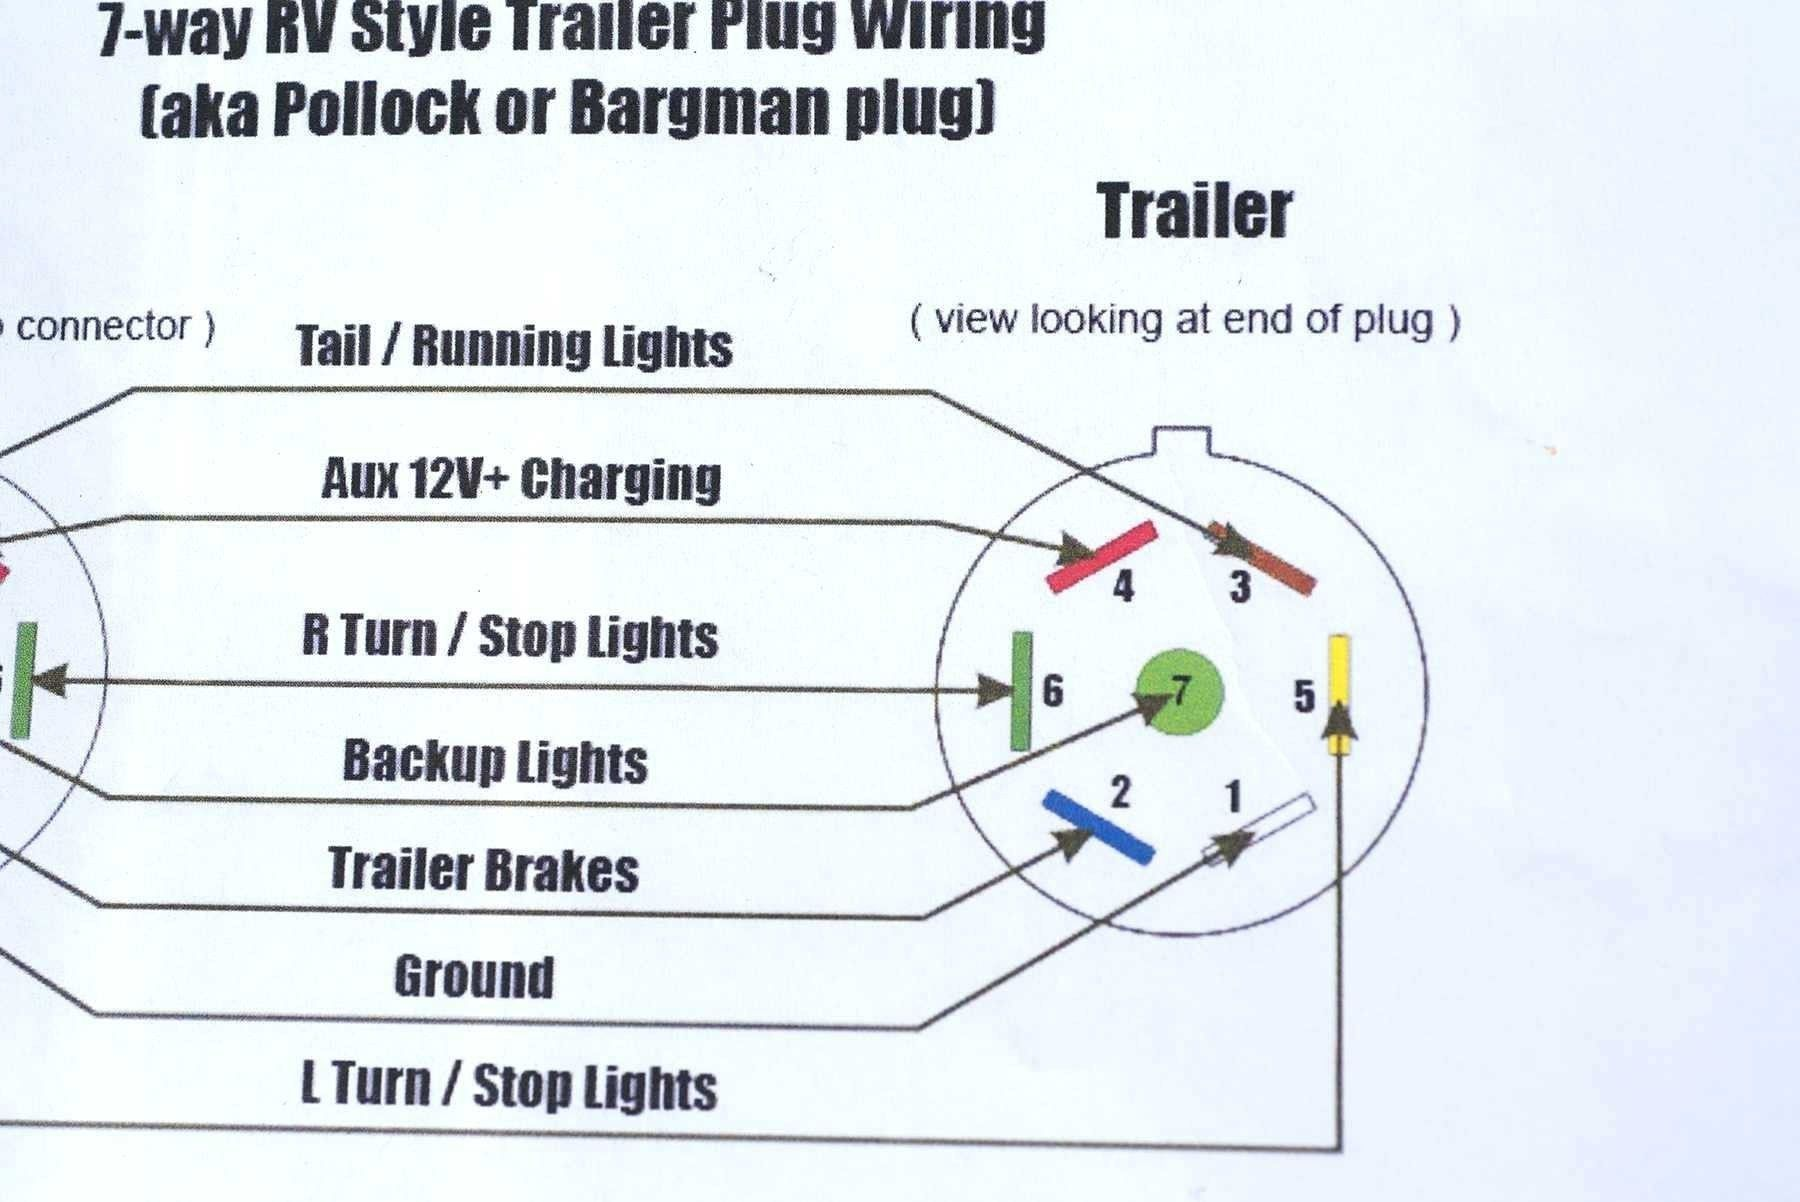 New Wiring Diagram towbar Electrics Caravan #diagram #diagramtemplate  #diagramsample | Trailer wiring diagram, Trailer light wiring, Boat trailer  lights | Ww Stock Trailer Wiring Harness For Trailer Lights |  | Pinterest